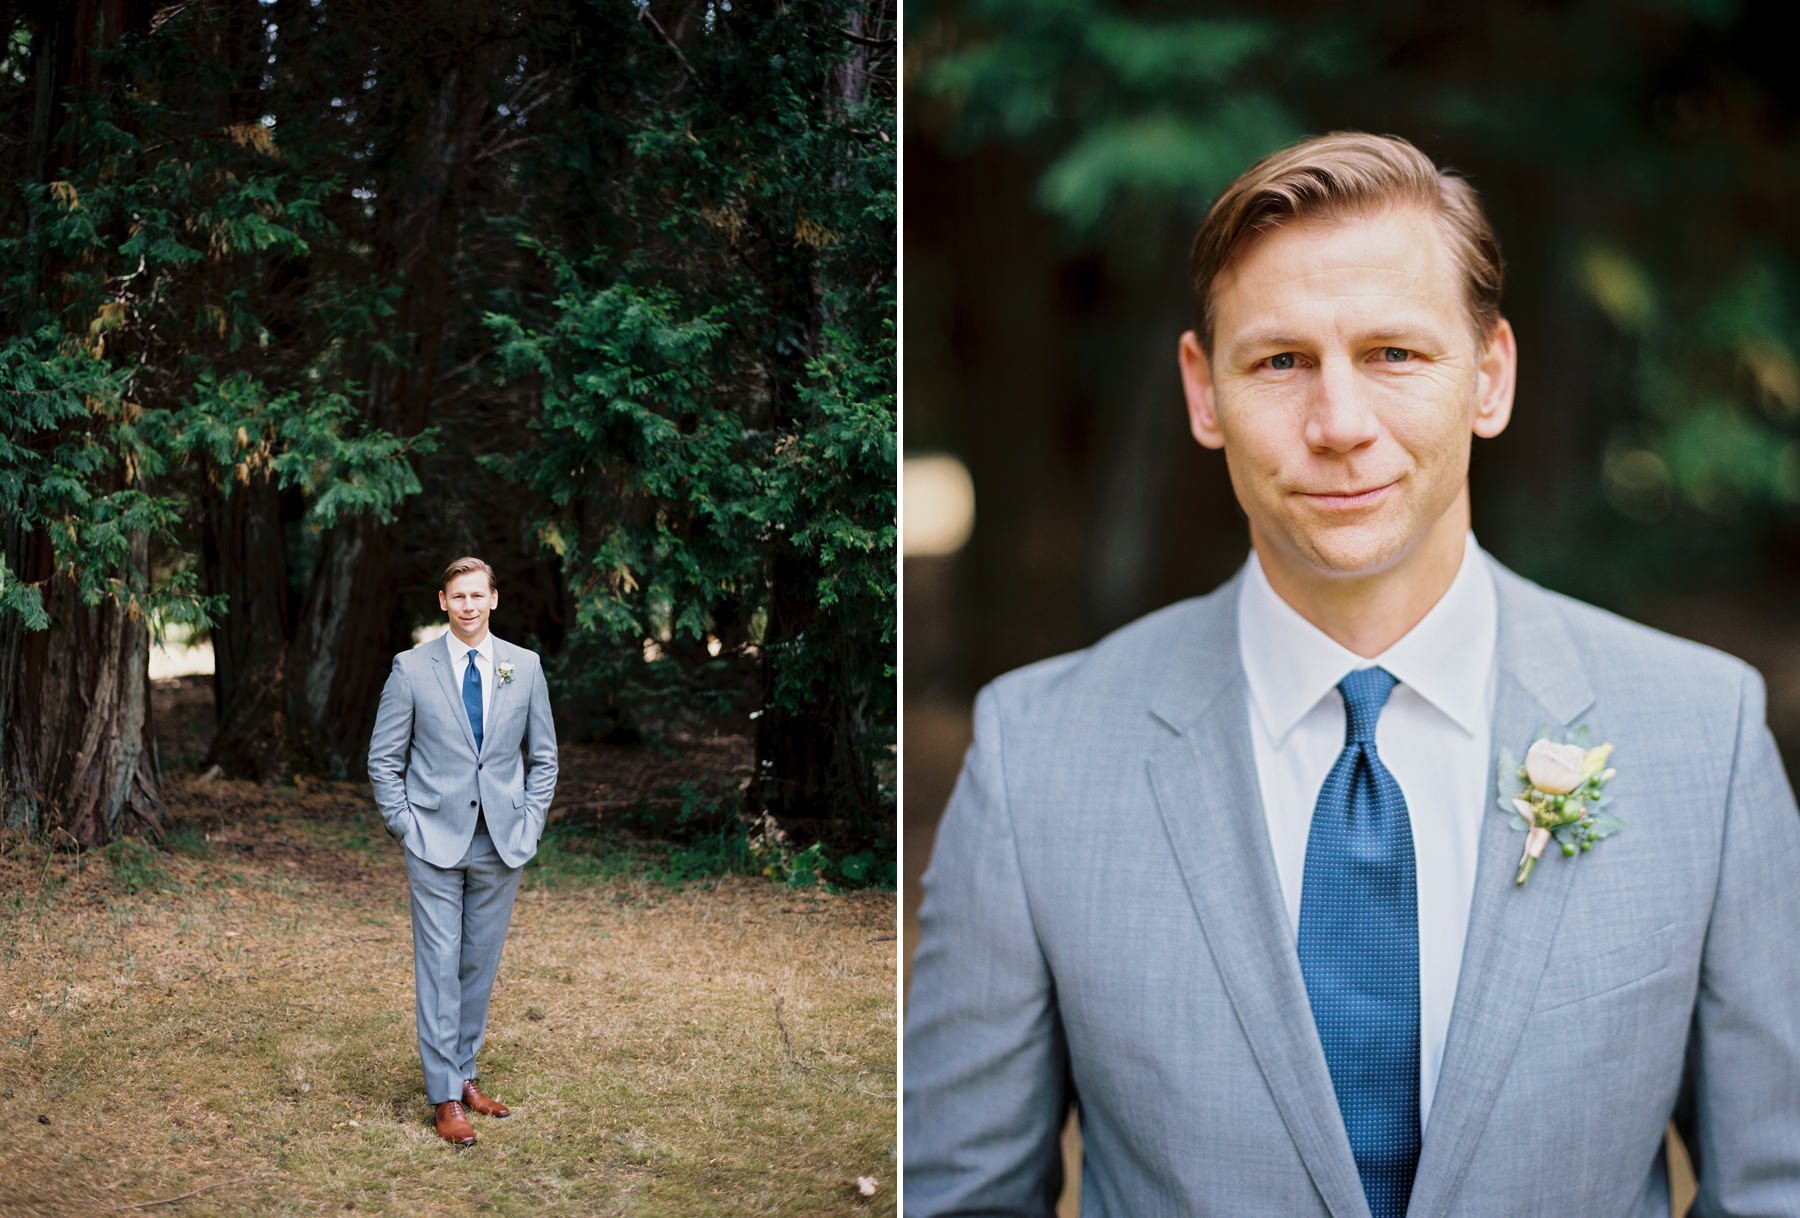 171-groom-finishing-his-tie-and-opening-a-wedding-gift-in-downtown-seattle.jpg